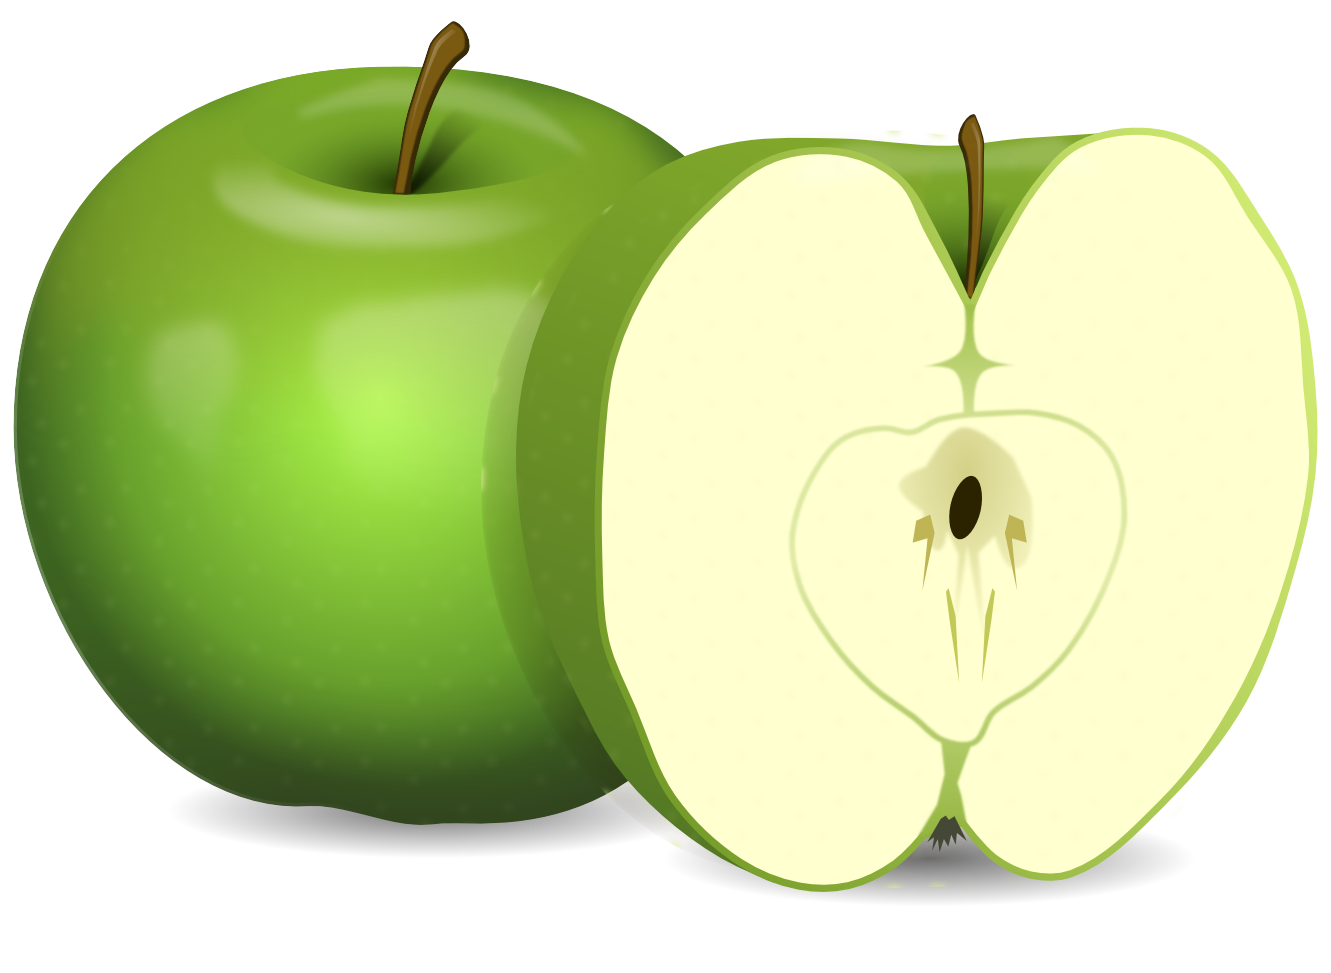 Apple clipart green banner royalty free library Green Apple's PNG Image - PurePNG | Free transparent CC0 PNG Image ... banner royalty free library